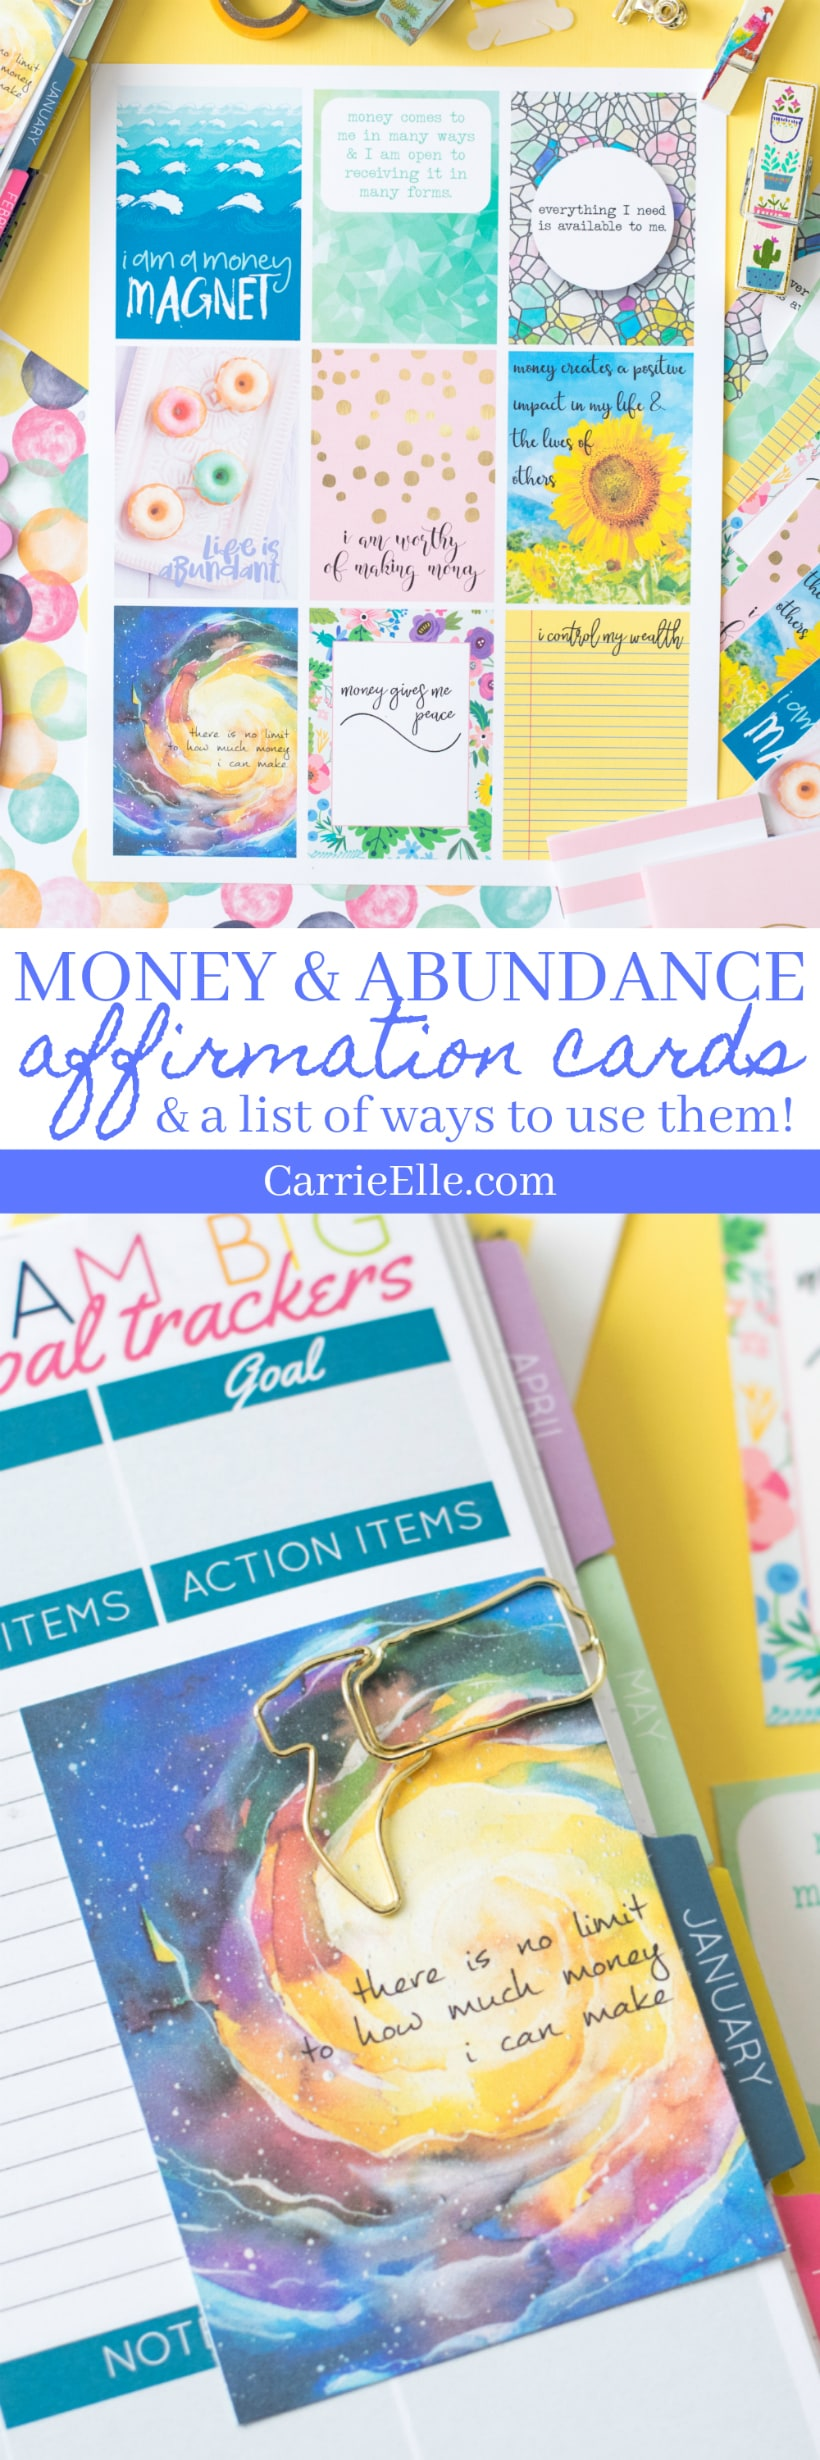 Printable Money Affirmation Cards